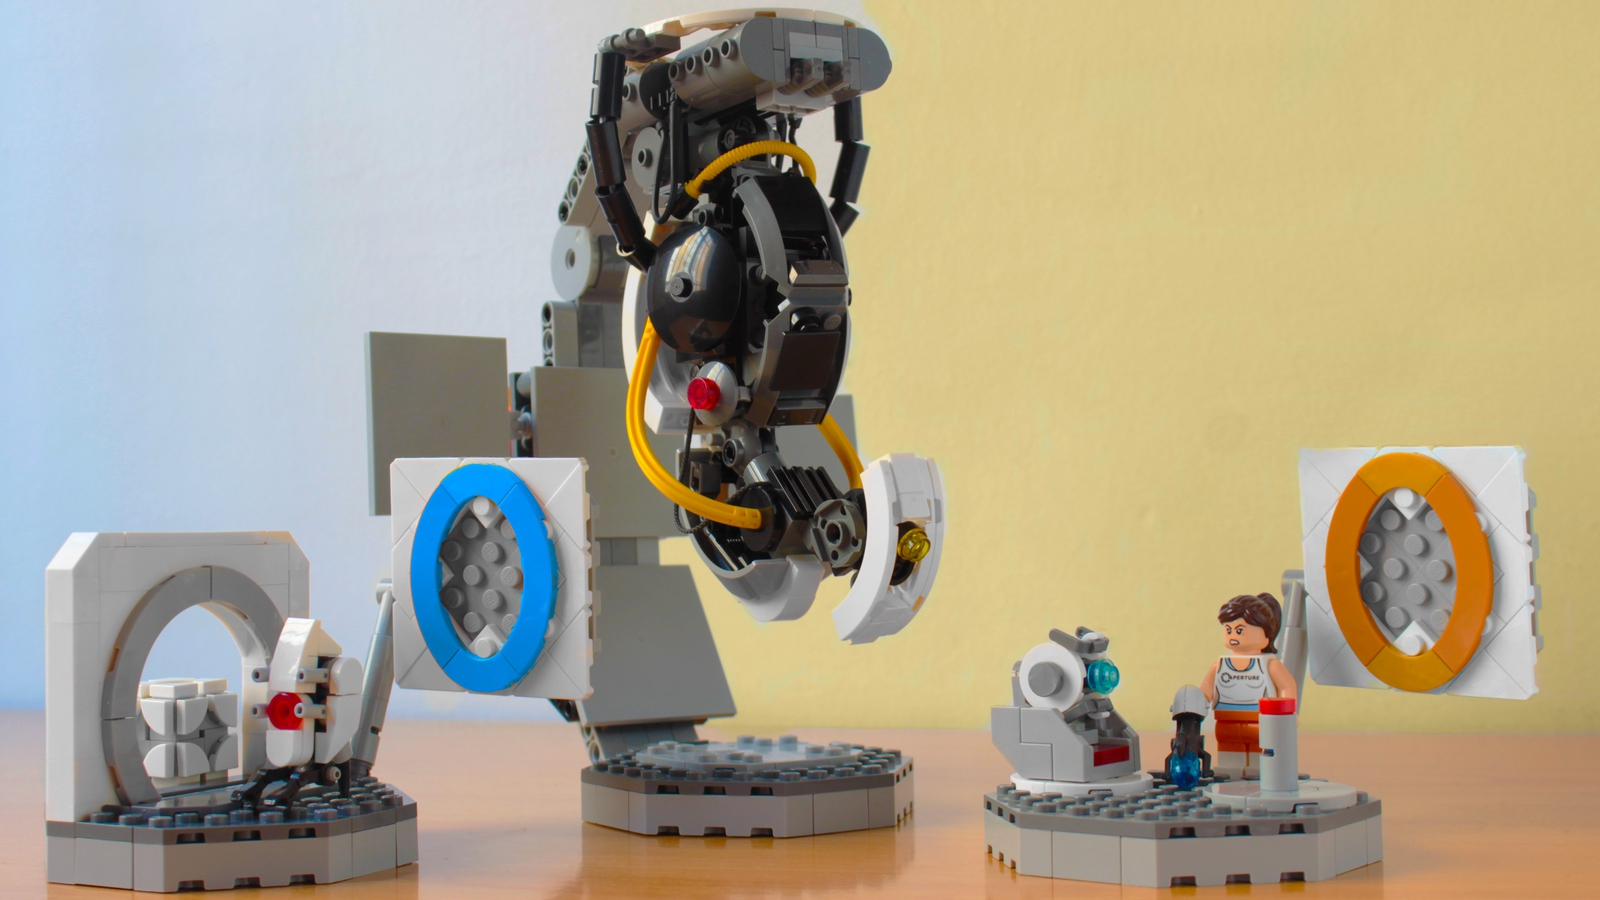 lego-ideas-portal-2-gloados-vs-chell-and-wheatley-hachiroku24-1 zusammengebaut.com